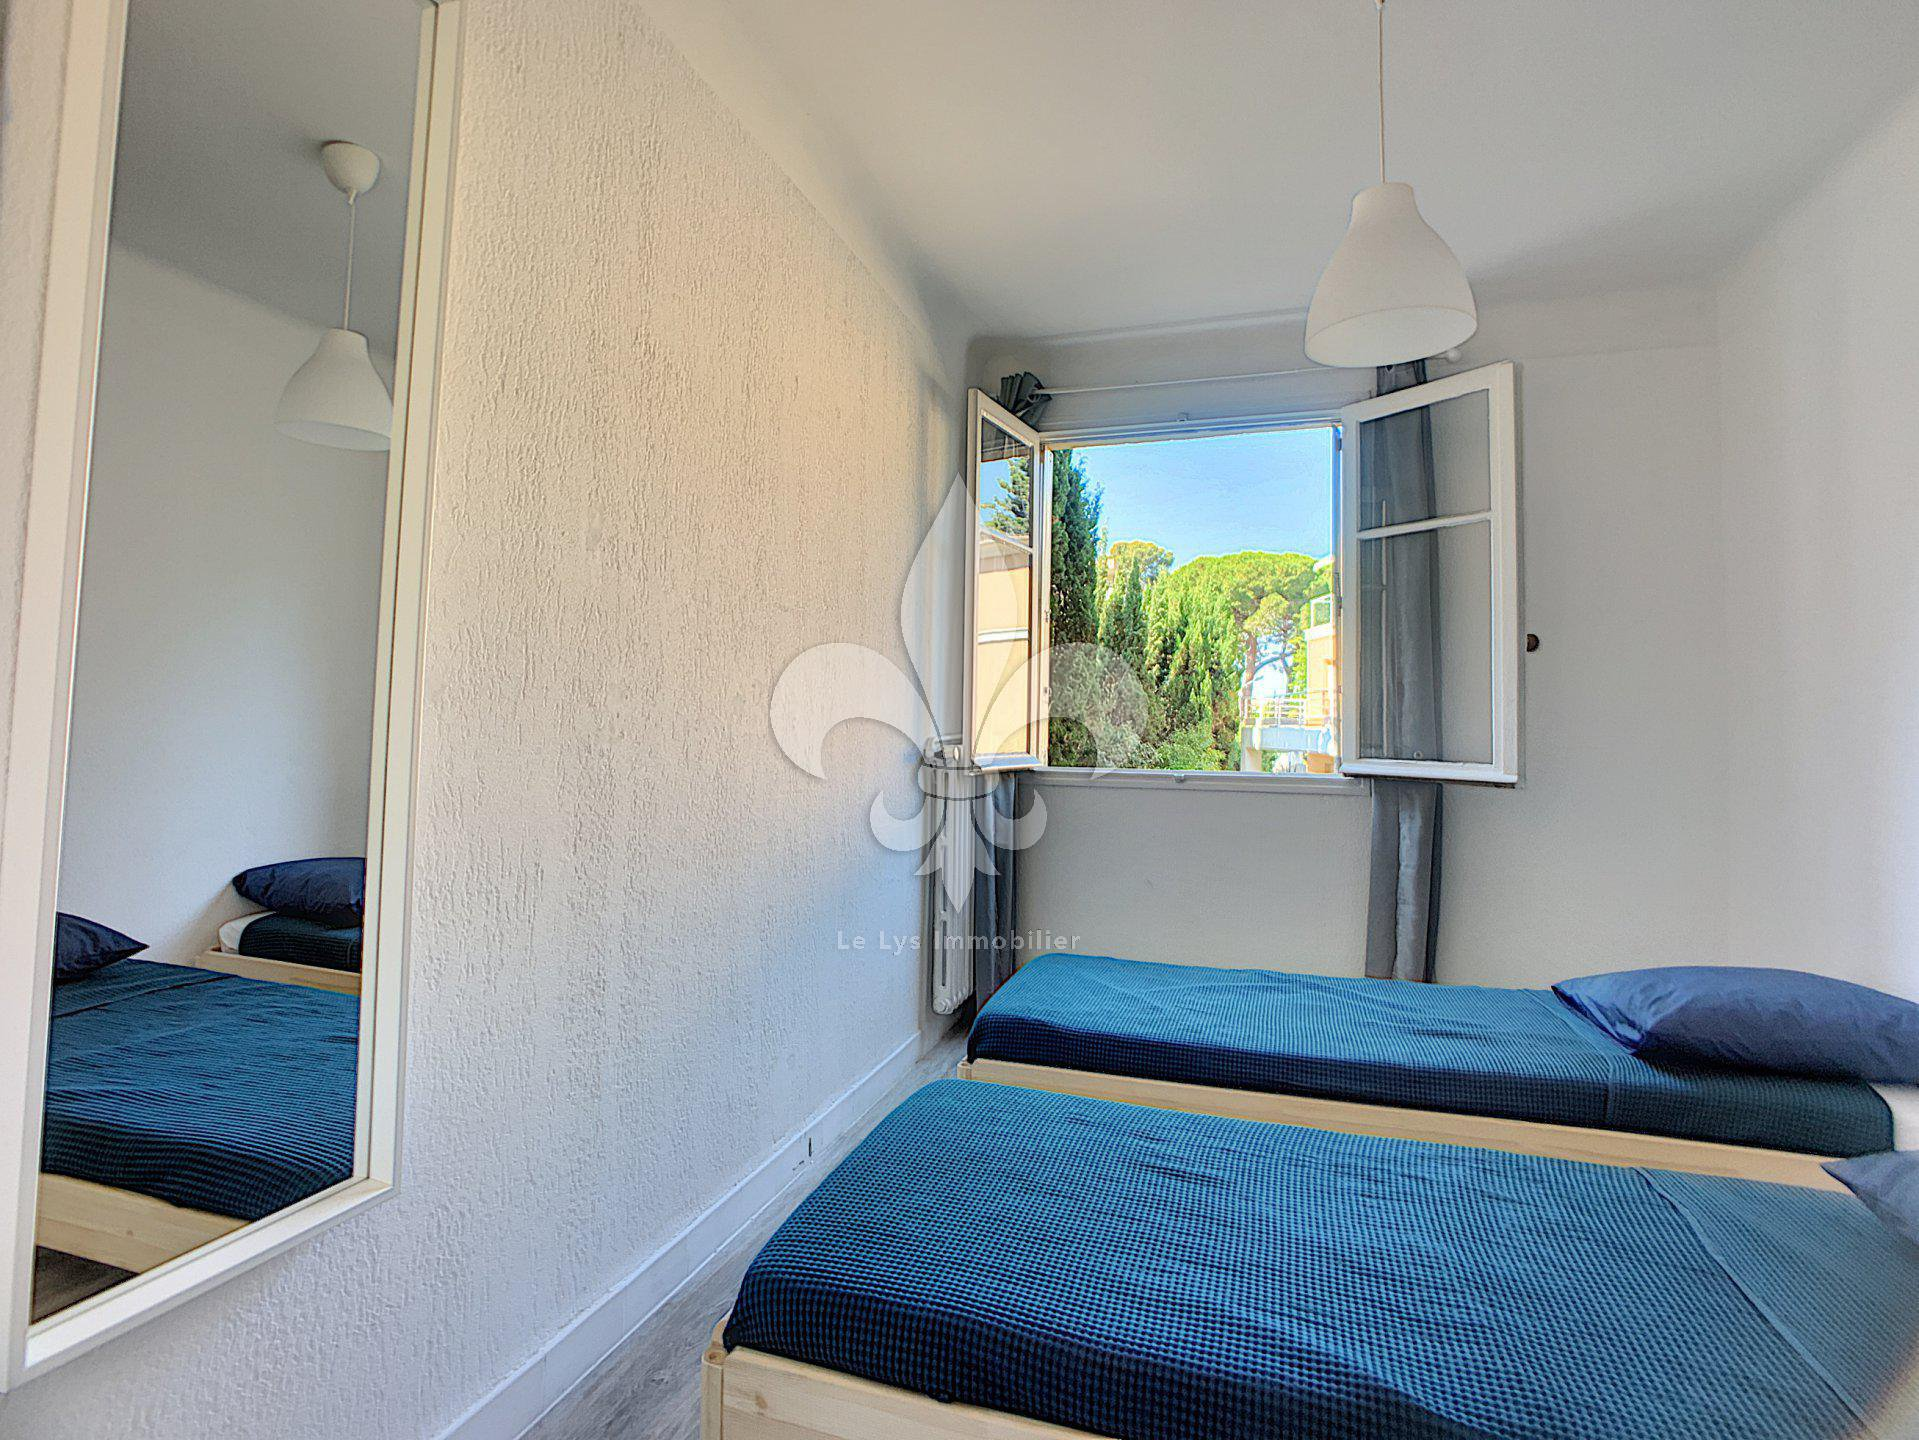 Cannes - Oxford / Les Coteaux: Bright 4 rooms with exterior